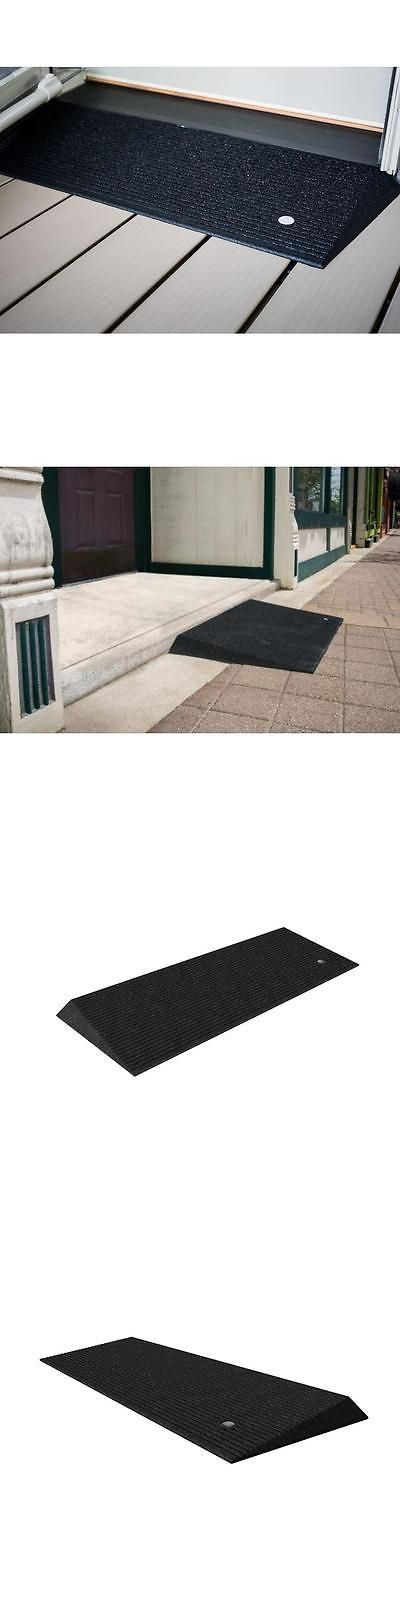 Access Ramps: Ez-Access Rubber Threshold Wheelchair Handicap Ramp With Beveled Edges 1.5 Rise BUY IT NOW ONLY: $81.5